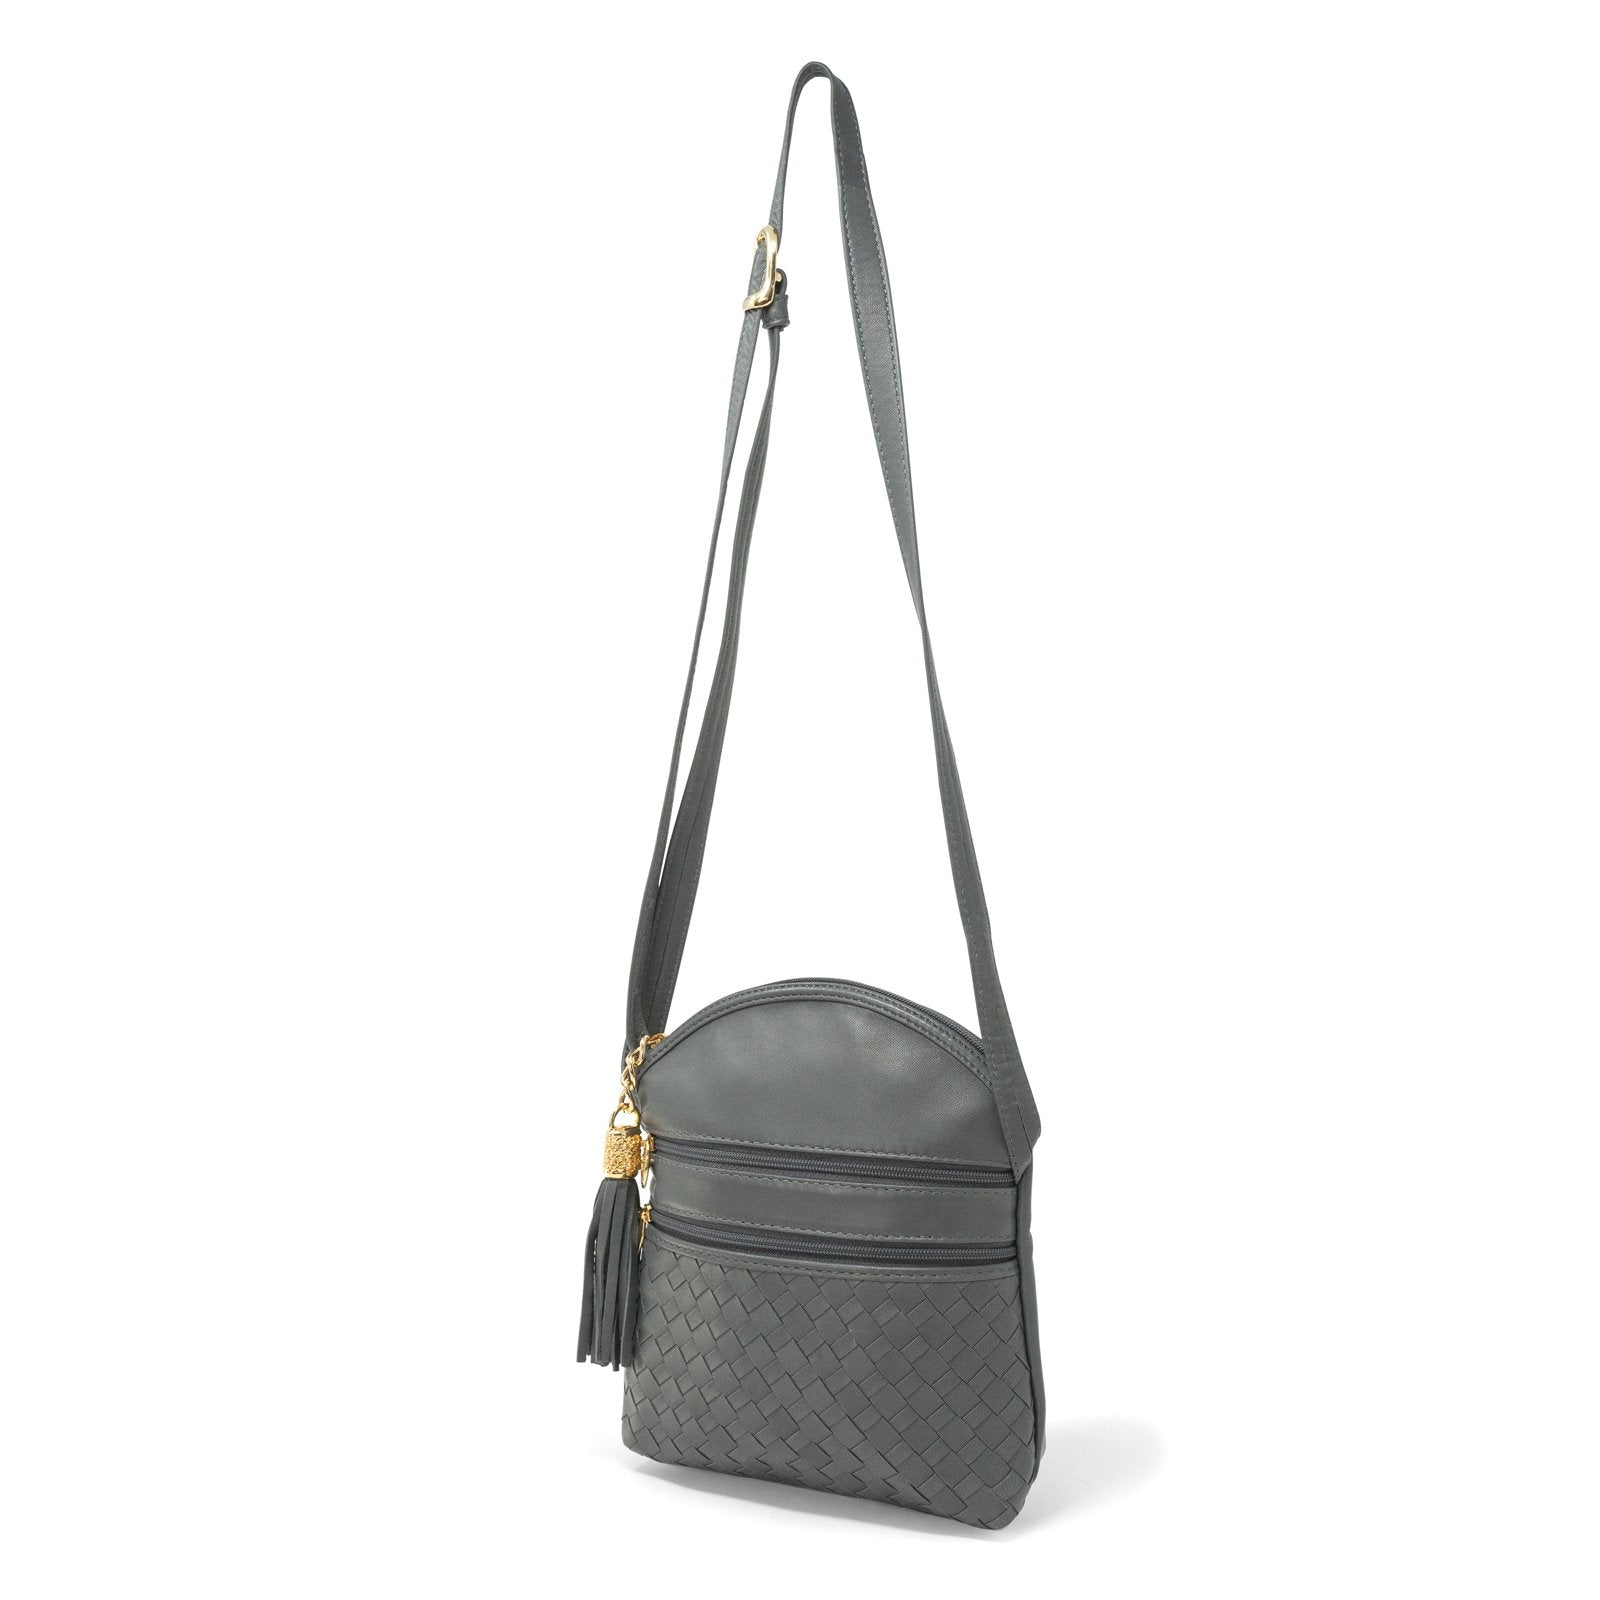 Women Intrecciato Leather Soft Messenger LUC964 Grey Quadro - Jennifer Tattanelli